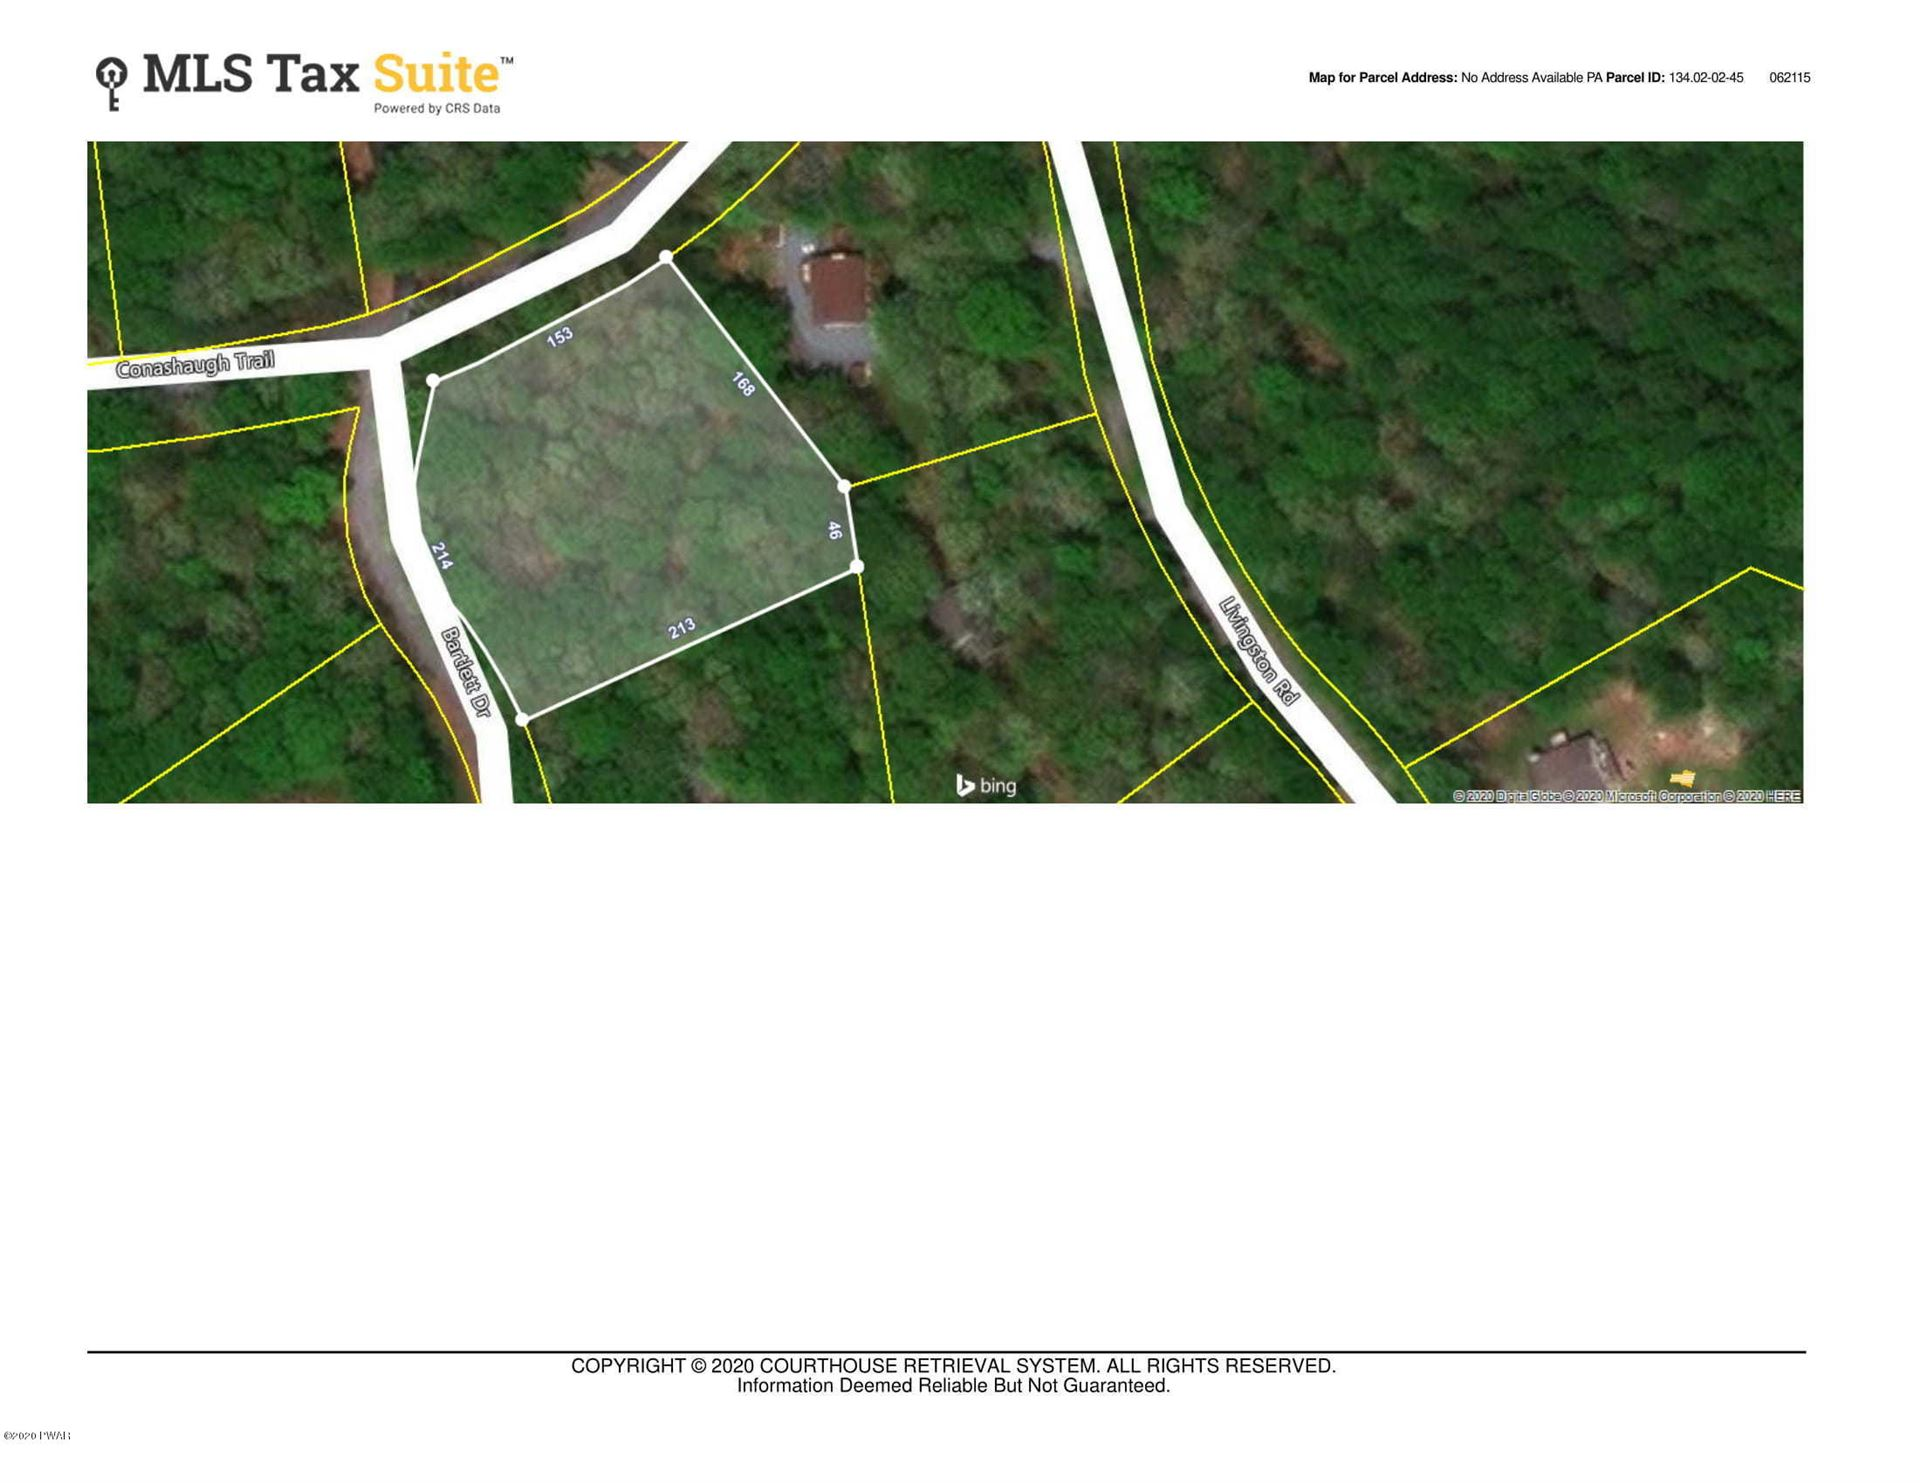 Photo of Lot 4112 Bartlett Dr, Milford, PA 18337 (MLS # 20-2385)